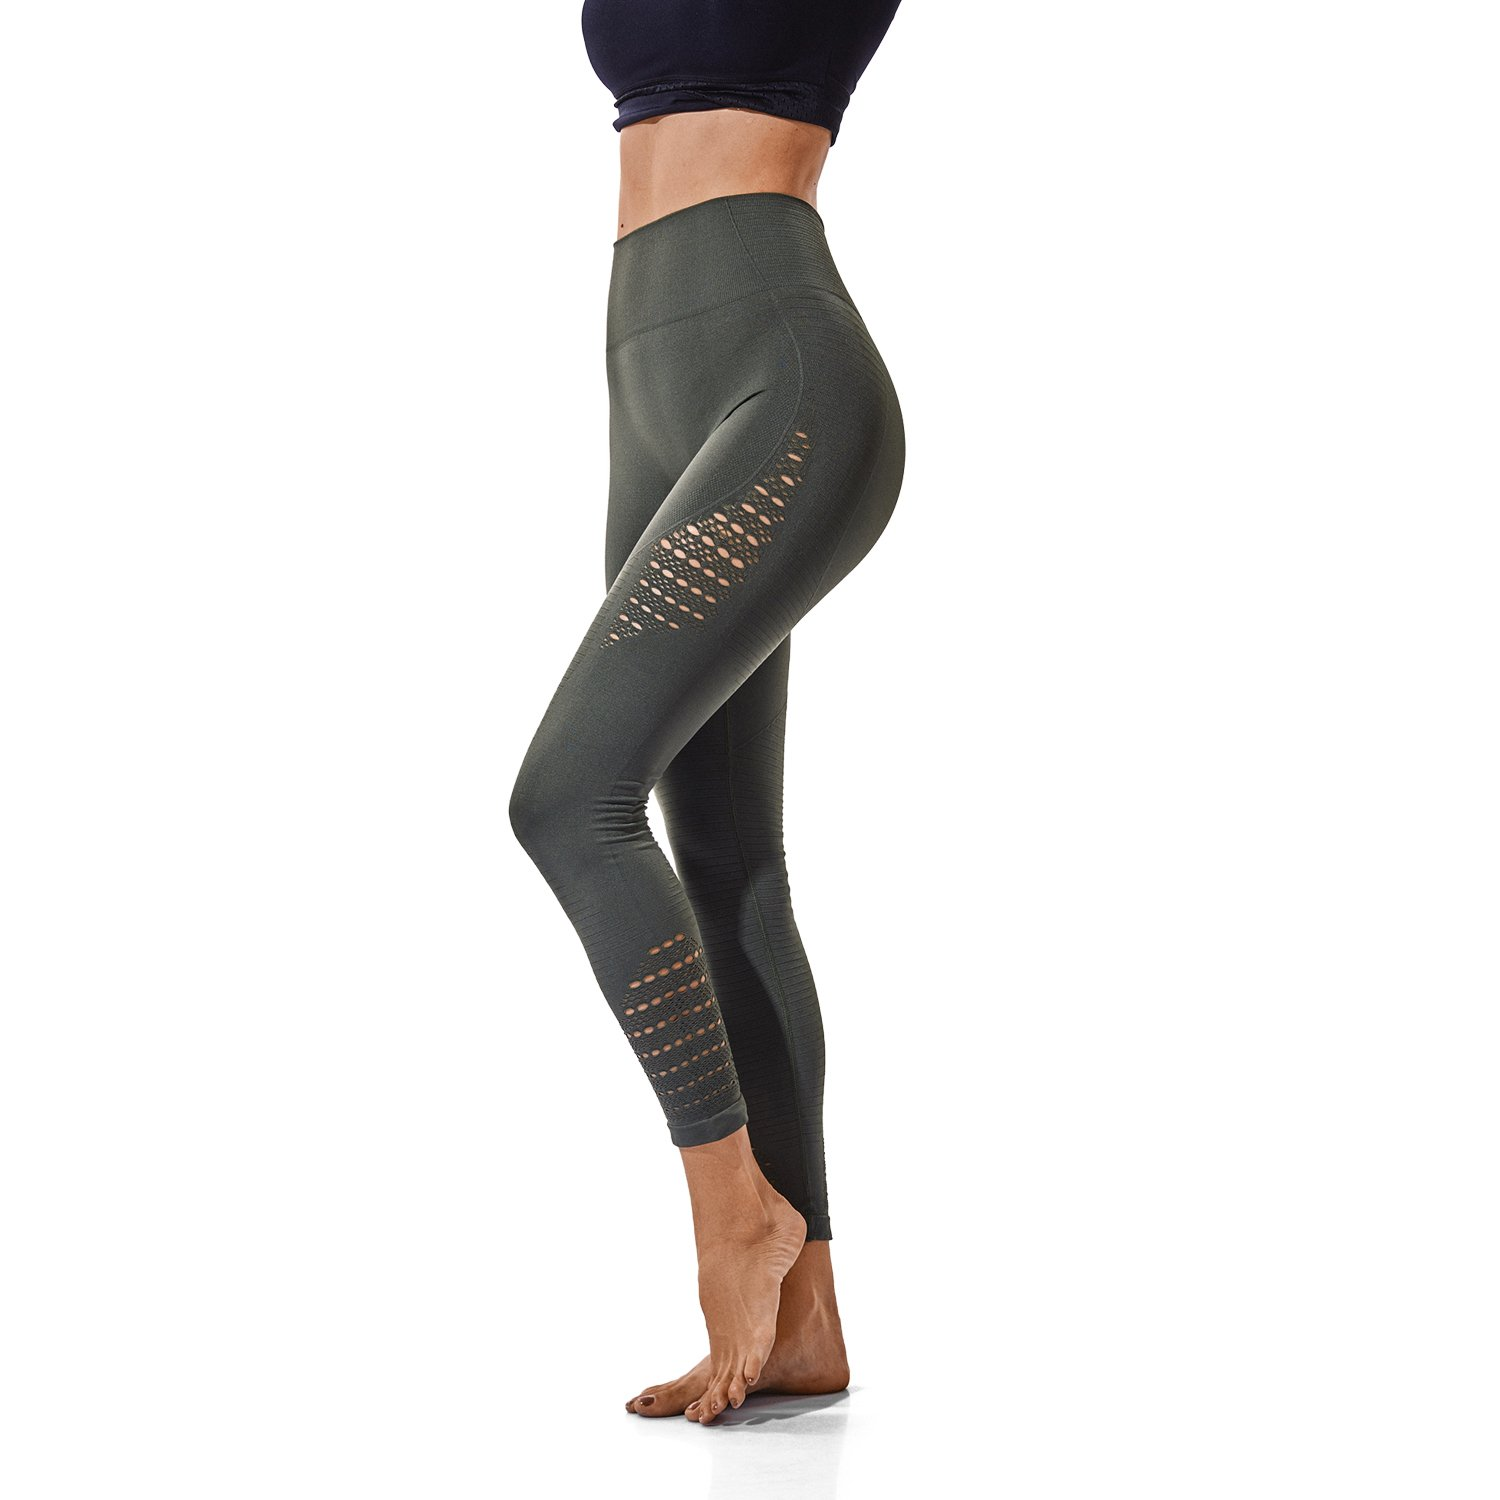 4e729af33749c6 FITTOO High Waisted Seamless Yoga Pants Gym Workout Leggings for Women  Tummy Control at Amazon Women's Clothing store: